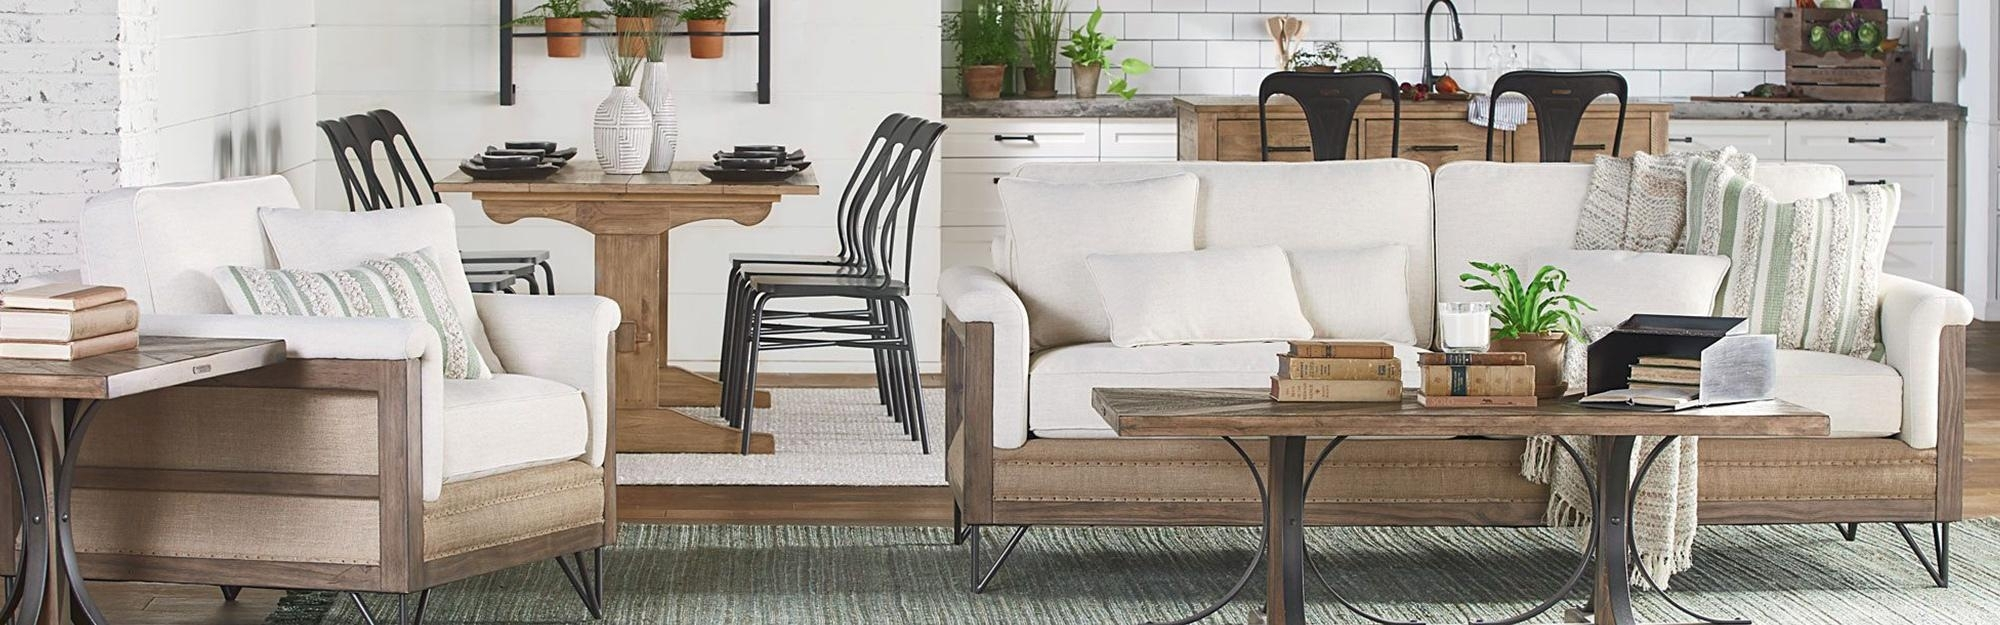 Brown Magnolia Home Living Room | Living Spaces With Magnolia Home Homestead 4 Piece Sectionals By Joanna Gaines (Image 3 of 25)